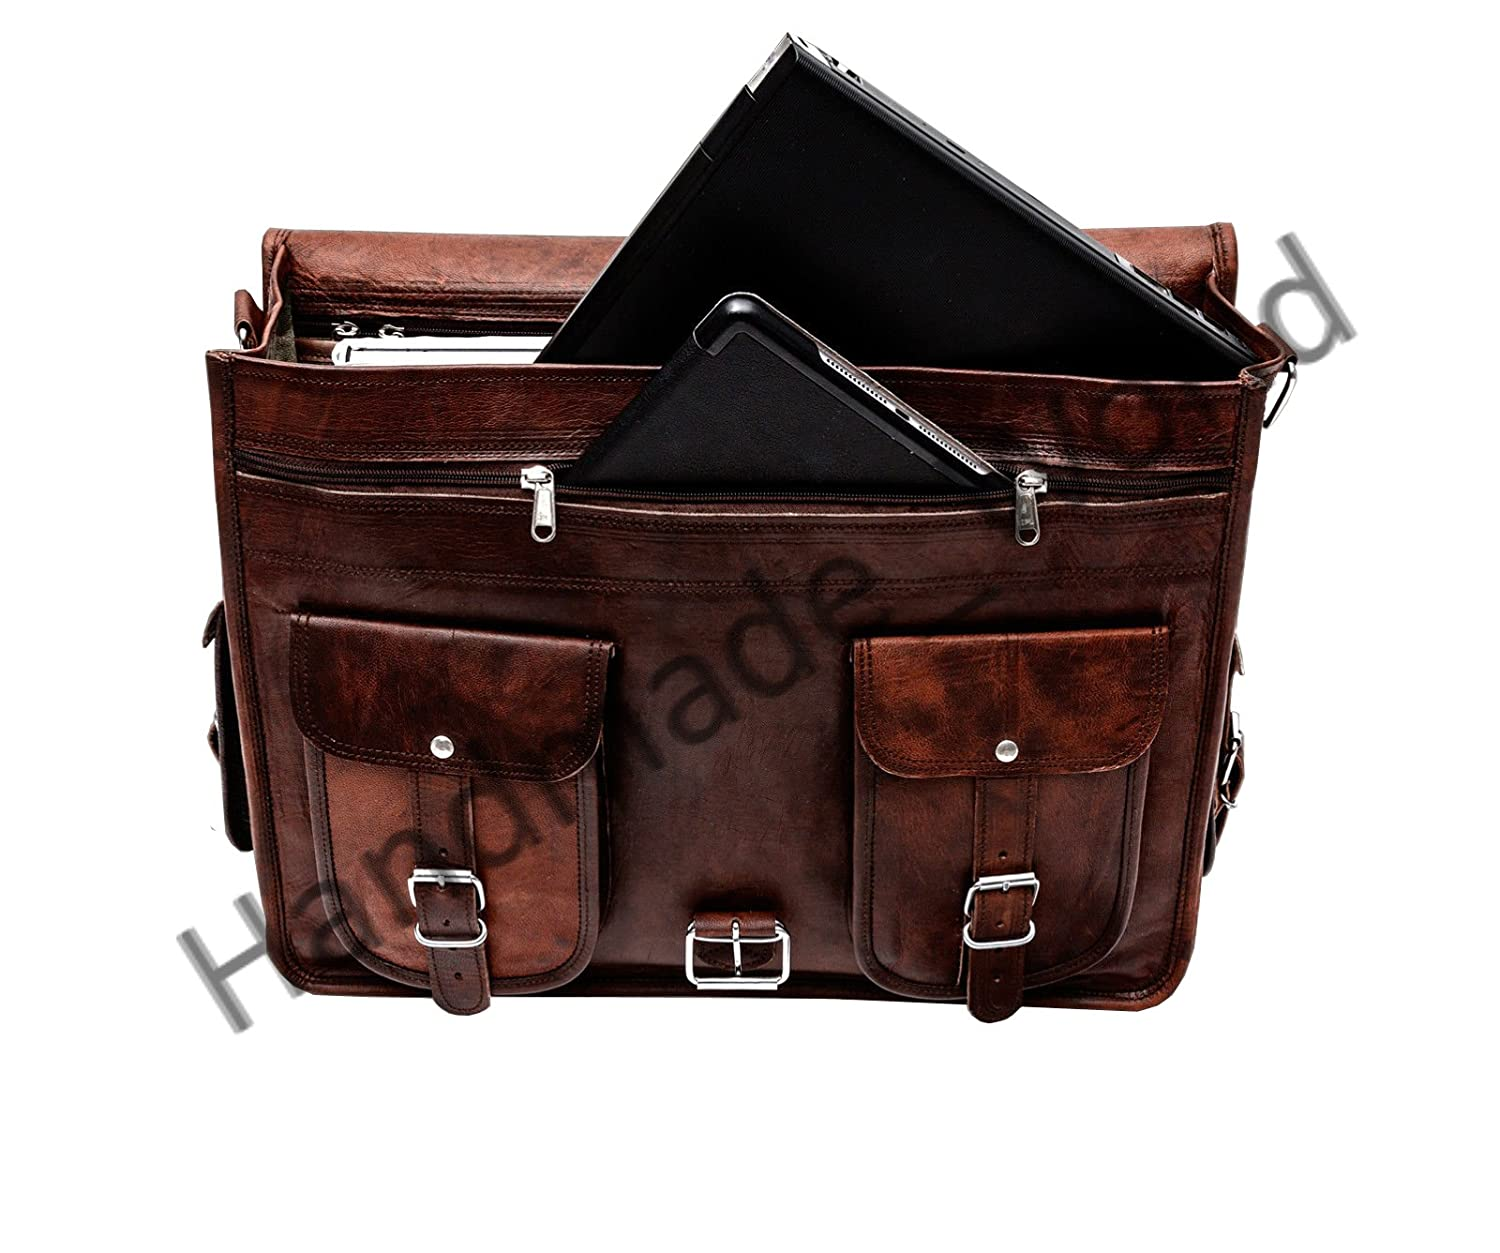 Amazon.com  Handmade World Leather Messenger Bag - 16 Inch Briefcases for  Men Brown Leather Laptop Bag- Vintage Look Satchel  Computers   Accessories 09a0d96fa7dee